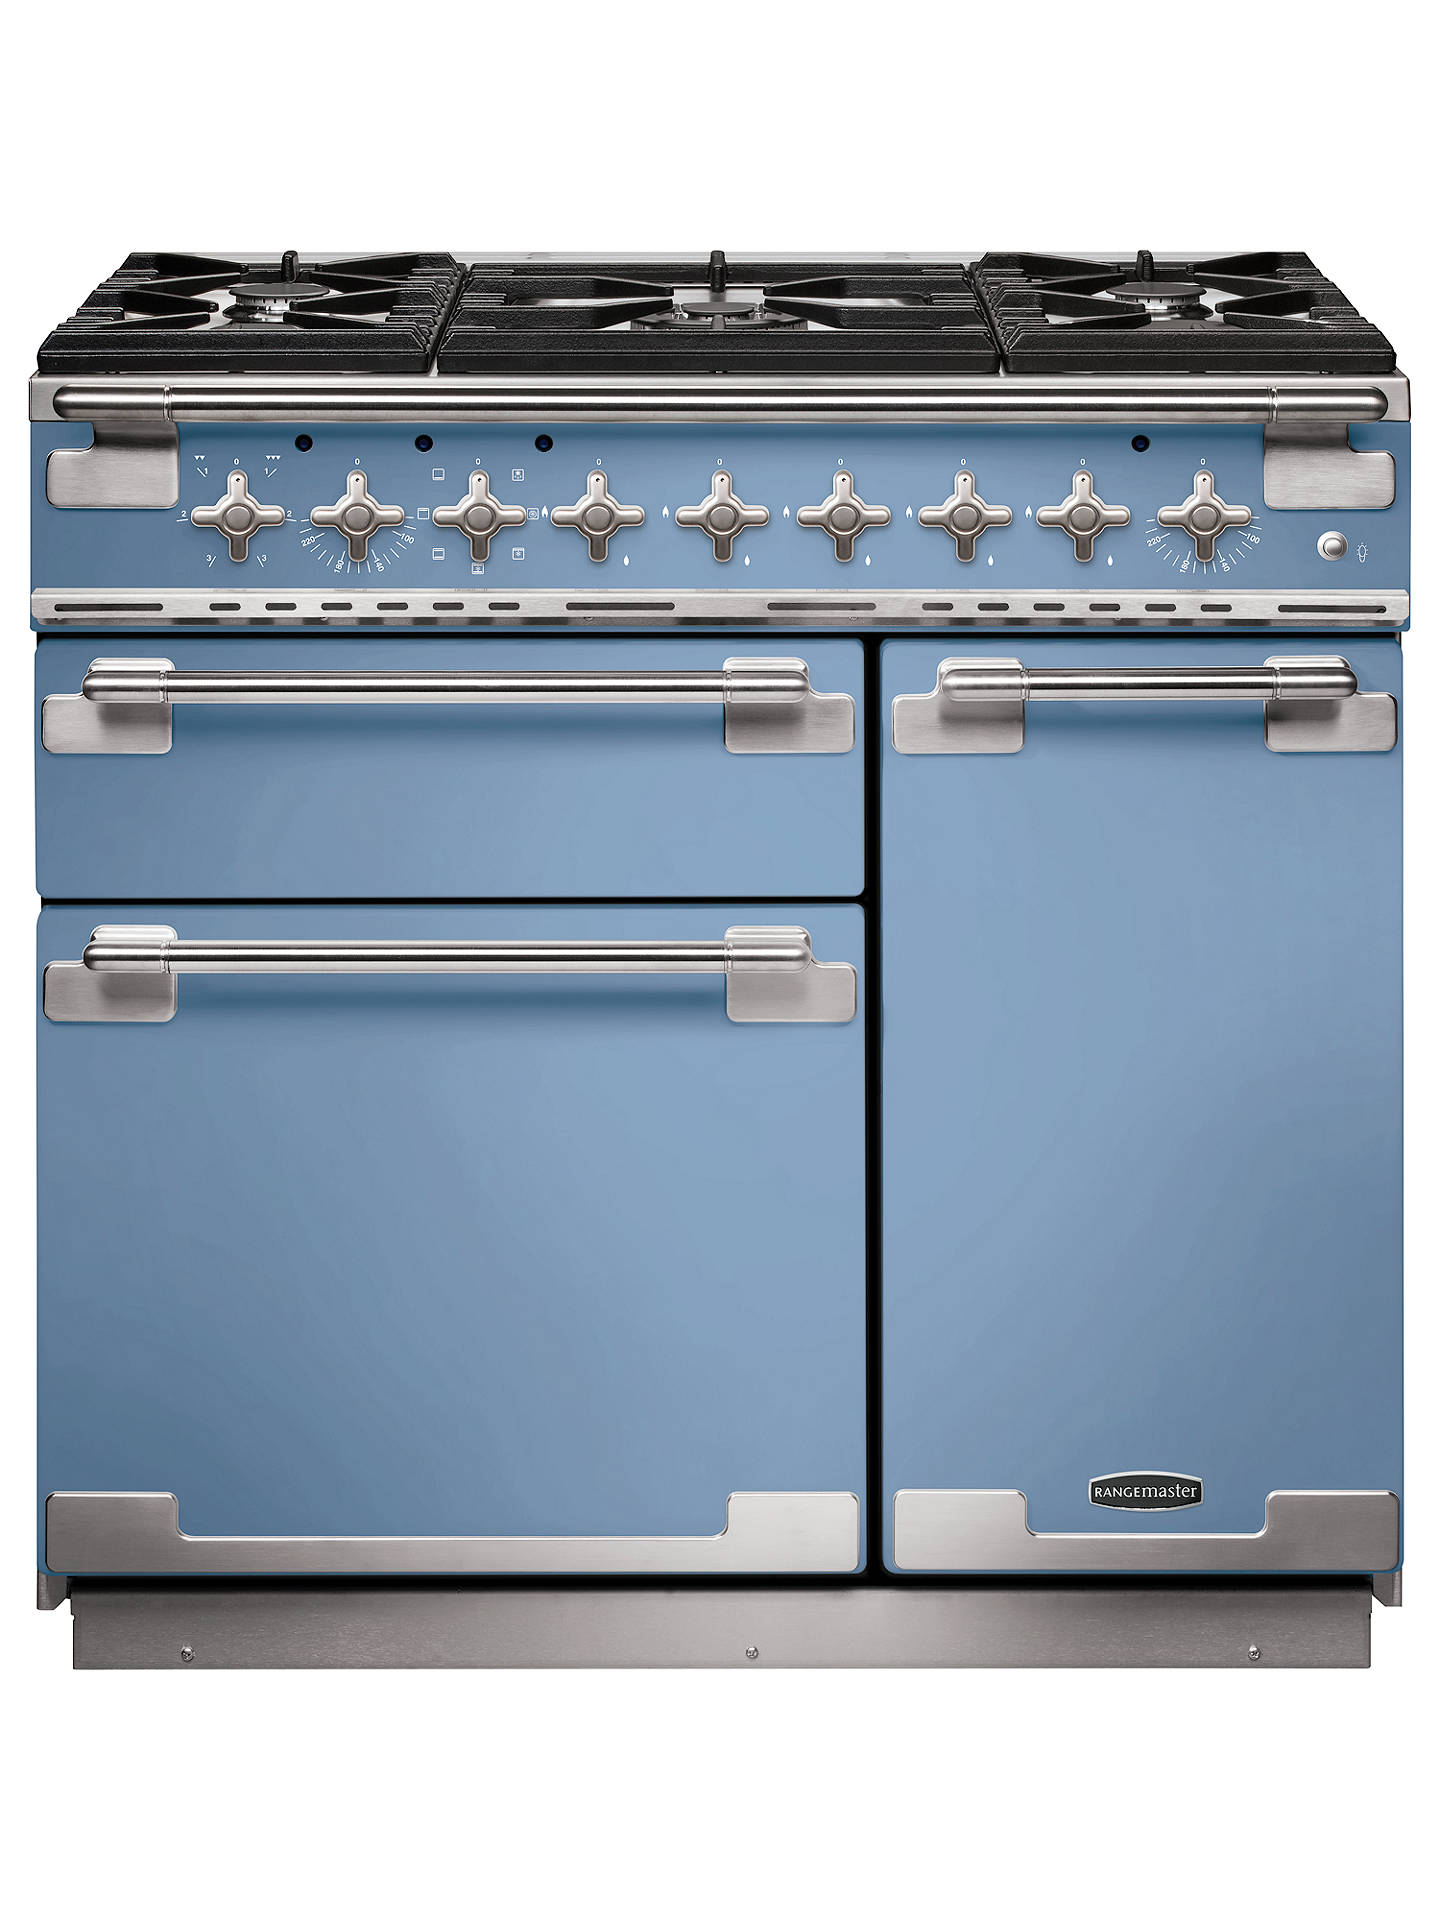 Buy Rangemaster Elise 90 Dual Fuel Range Cooker, China Blue/Chrome Trim Online at johnlewis.com